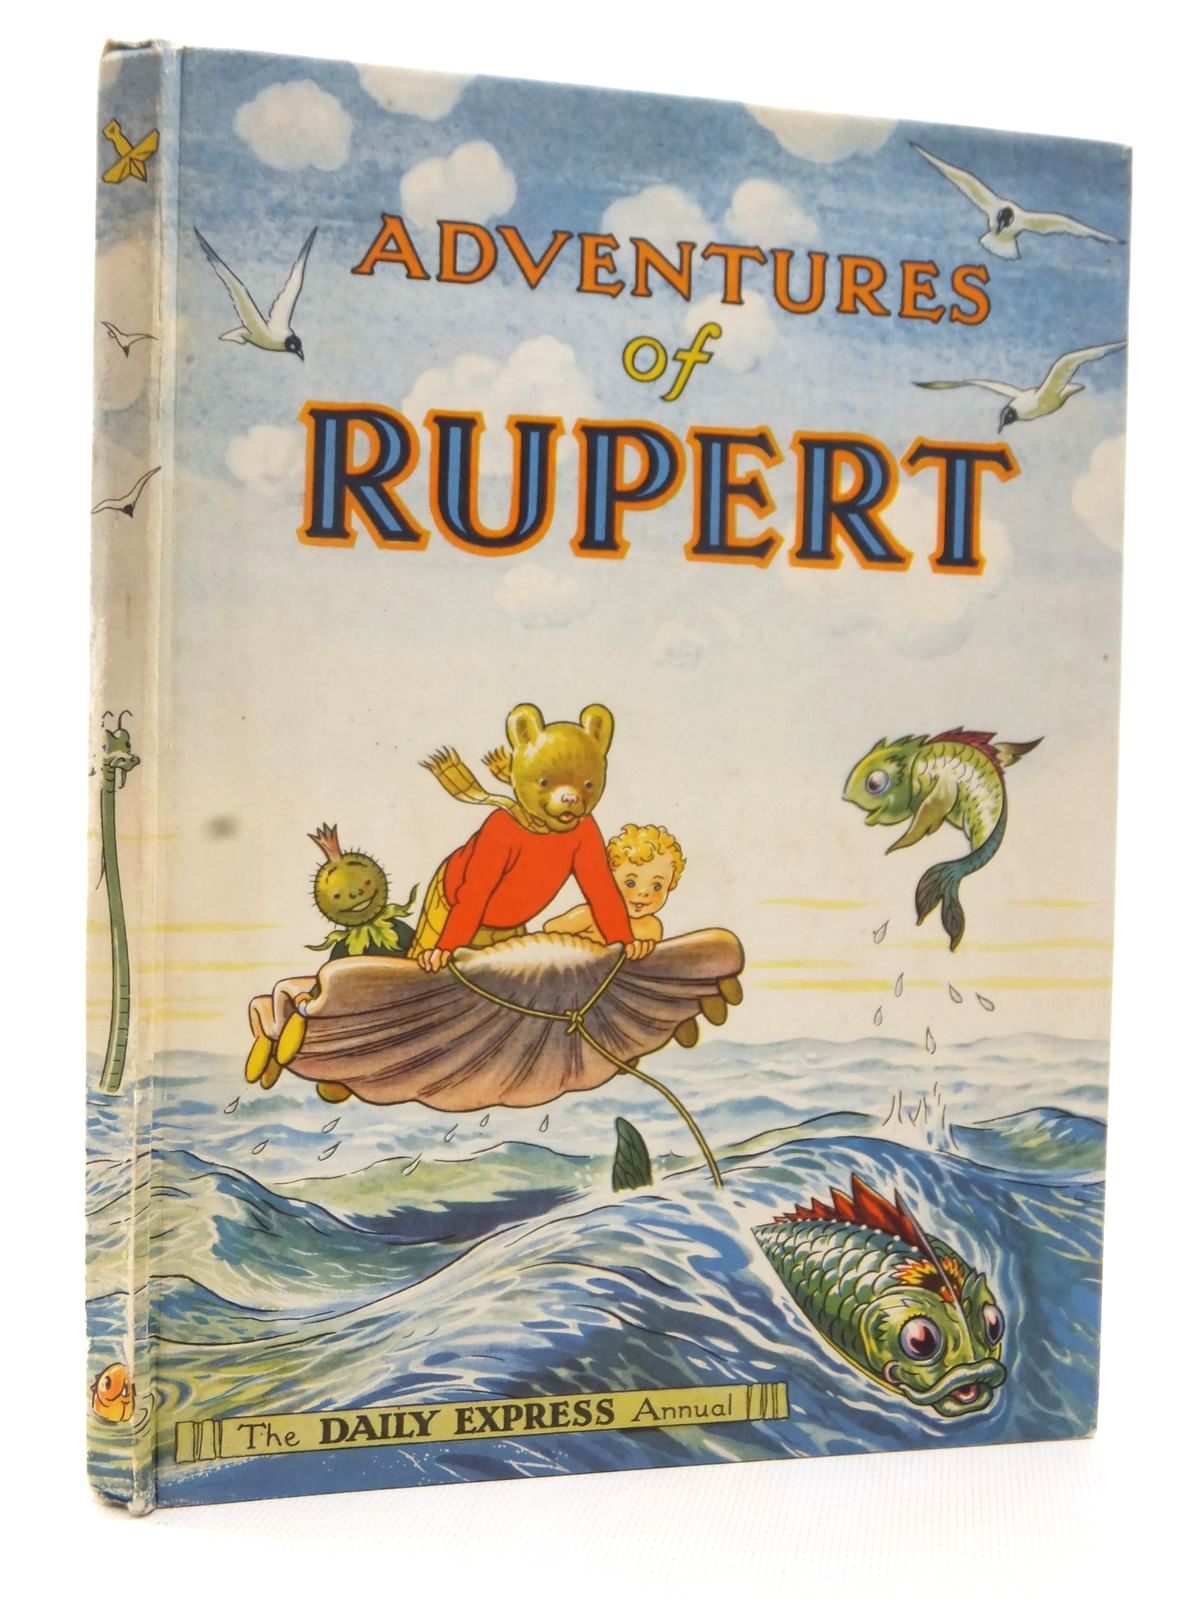 Photo of RUPERT ANNUAL 1950 - ADVENTURES OF RUPERT written by Bestall, Alfred illustrated by Bestall, Alfred published by Daily Express (STOCK CODE: 2124045)  for sale by Stella & Rose's Books